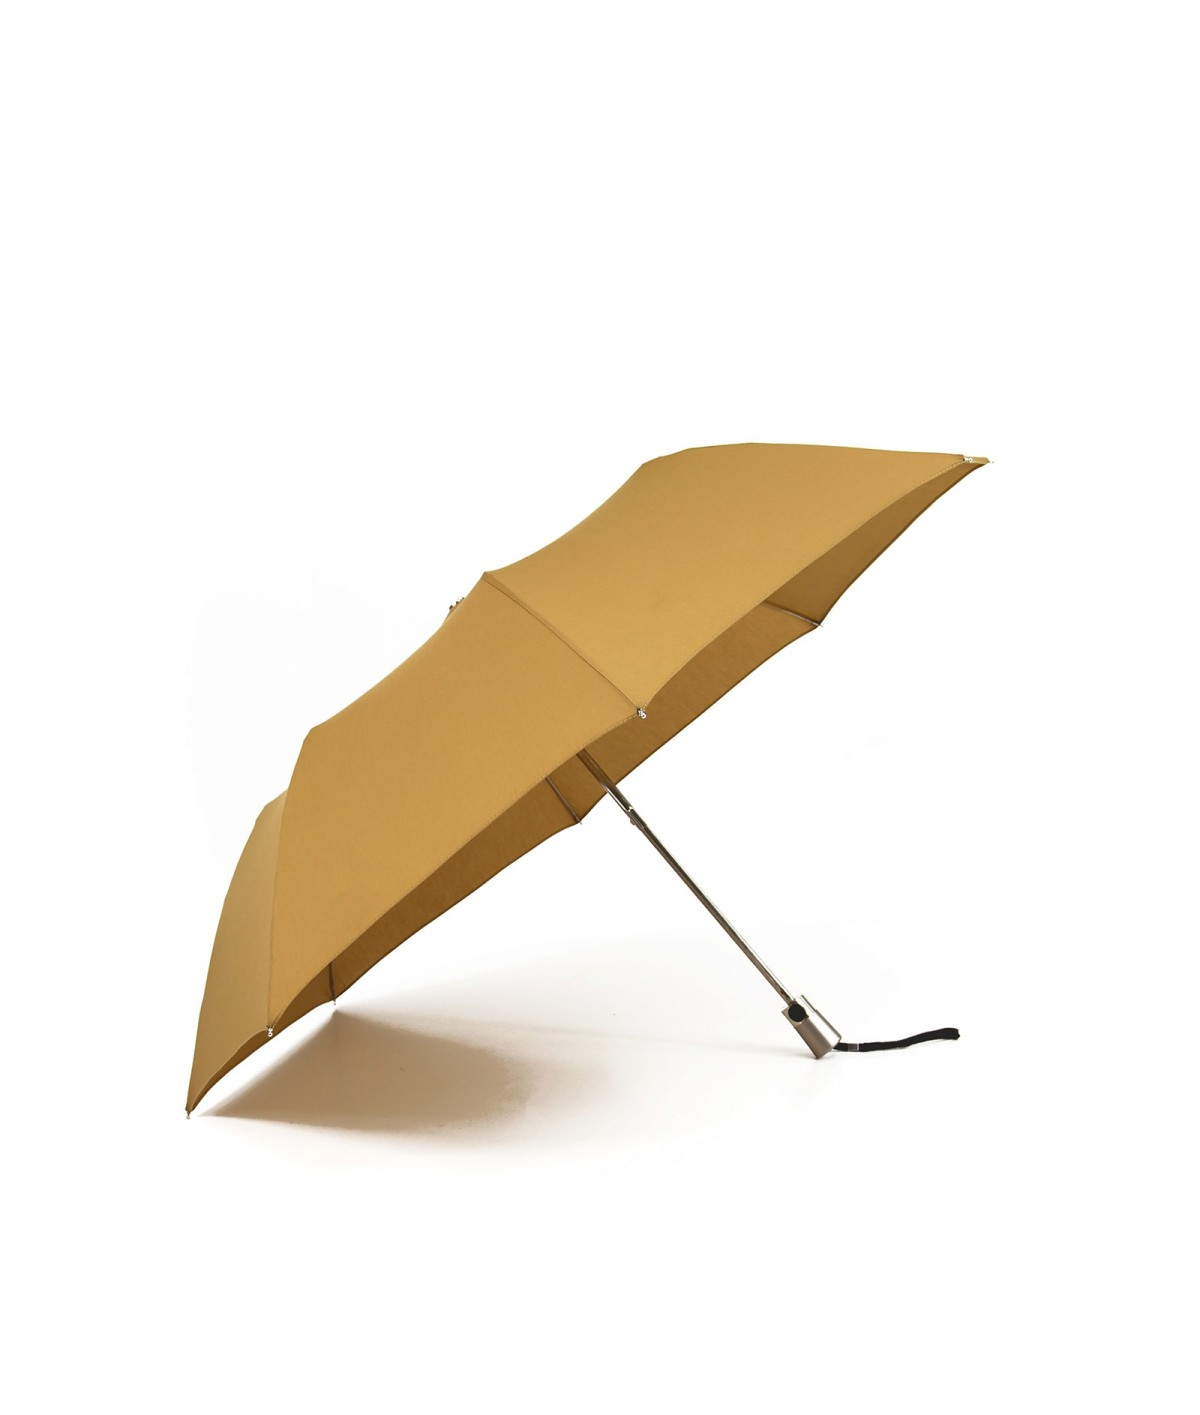 "→ Umbrella-Parasol - Limited Edition ""The United"" - Sunshine Yellow handcrafted in France by Maison Pierre Vaux"